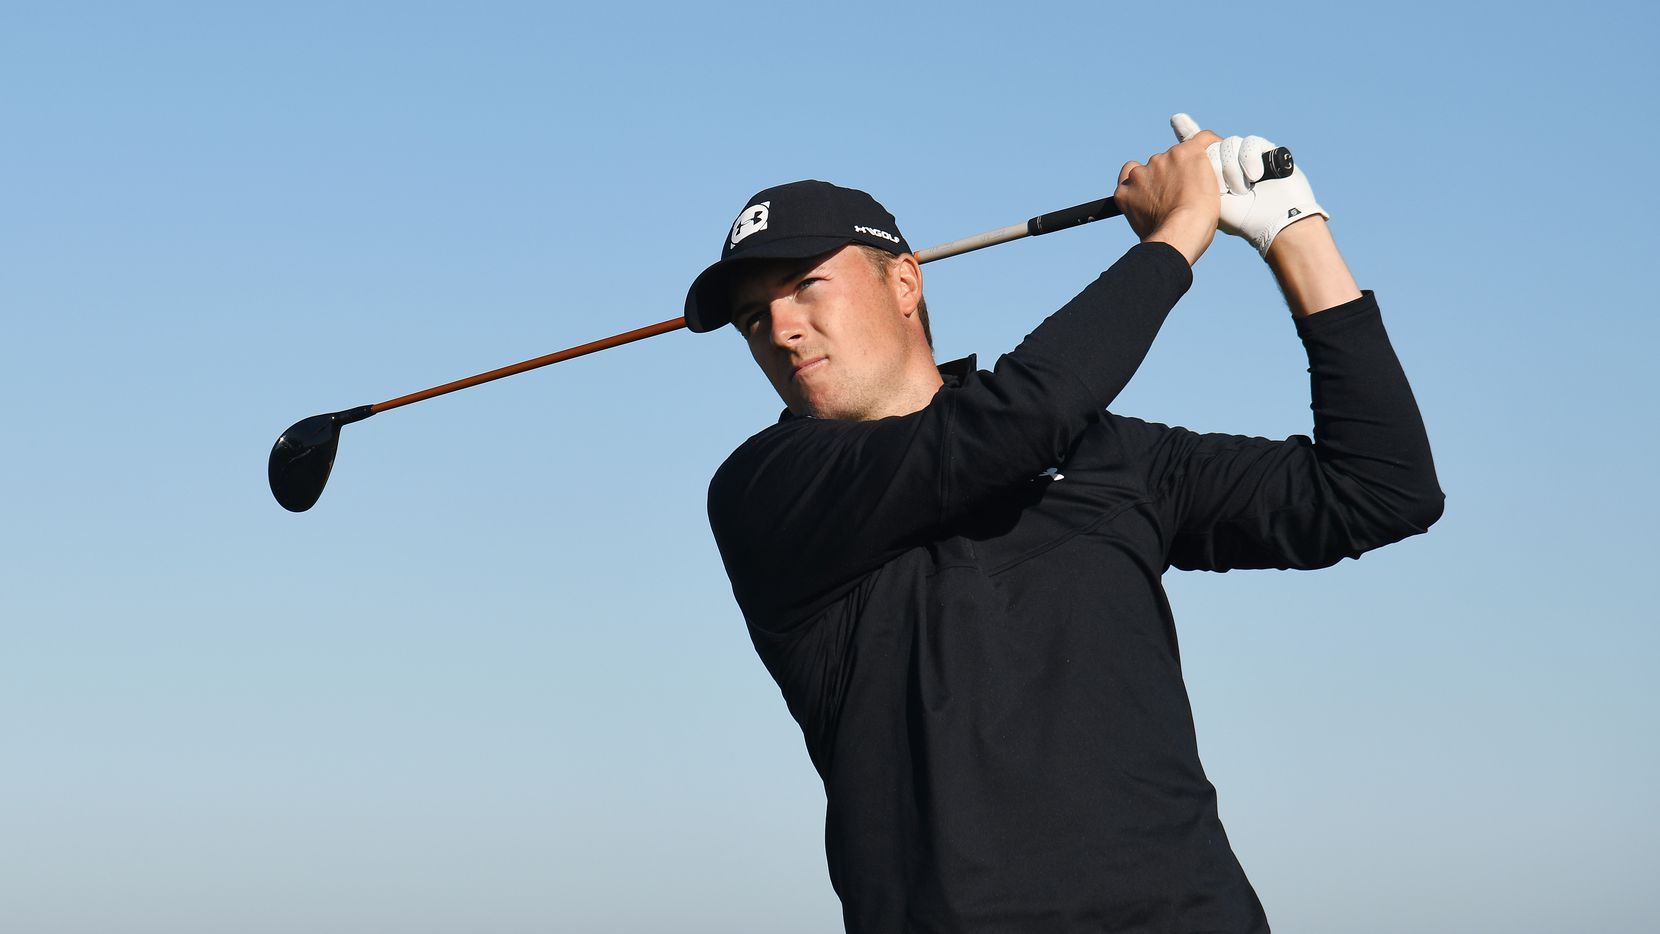 PEBBLE BEACH, CALIFORNIA - FEBRUARY 07:  Jordan Spieth of the United States plays his shot from the 13th tee during the second round of the AT&T Pebble Beach Pro-Am at Monterey Peninsula Country Club on February 07, 2020 in Pebble Beach, California.